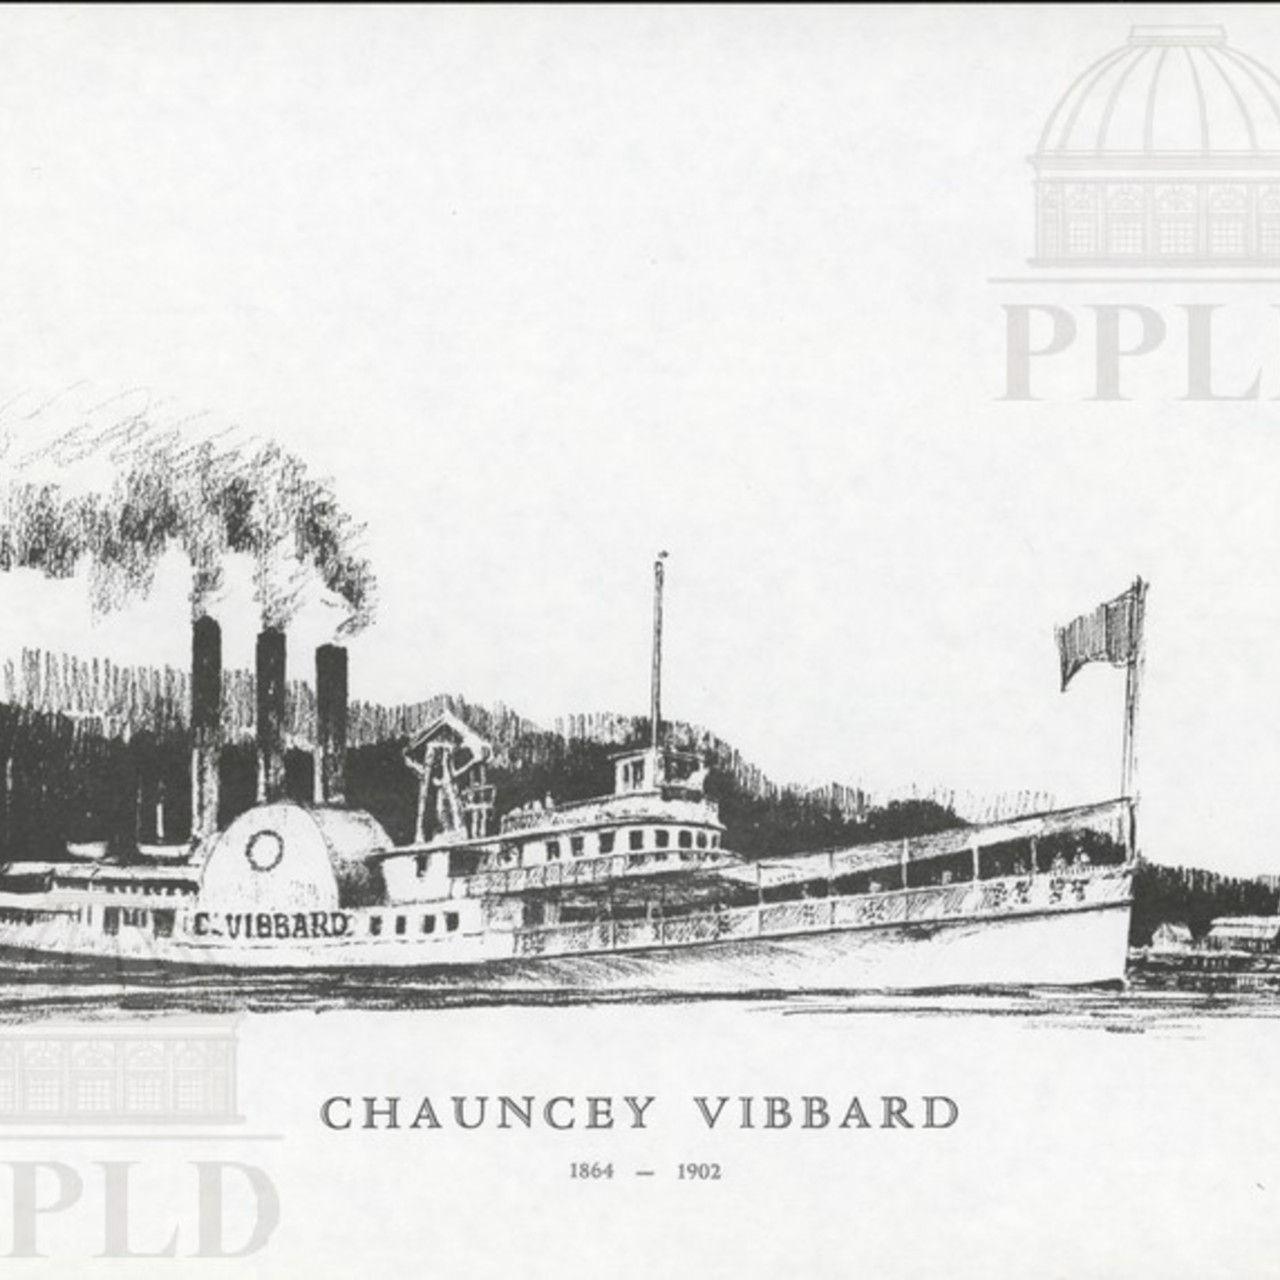 The Chauncey Vibbard